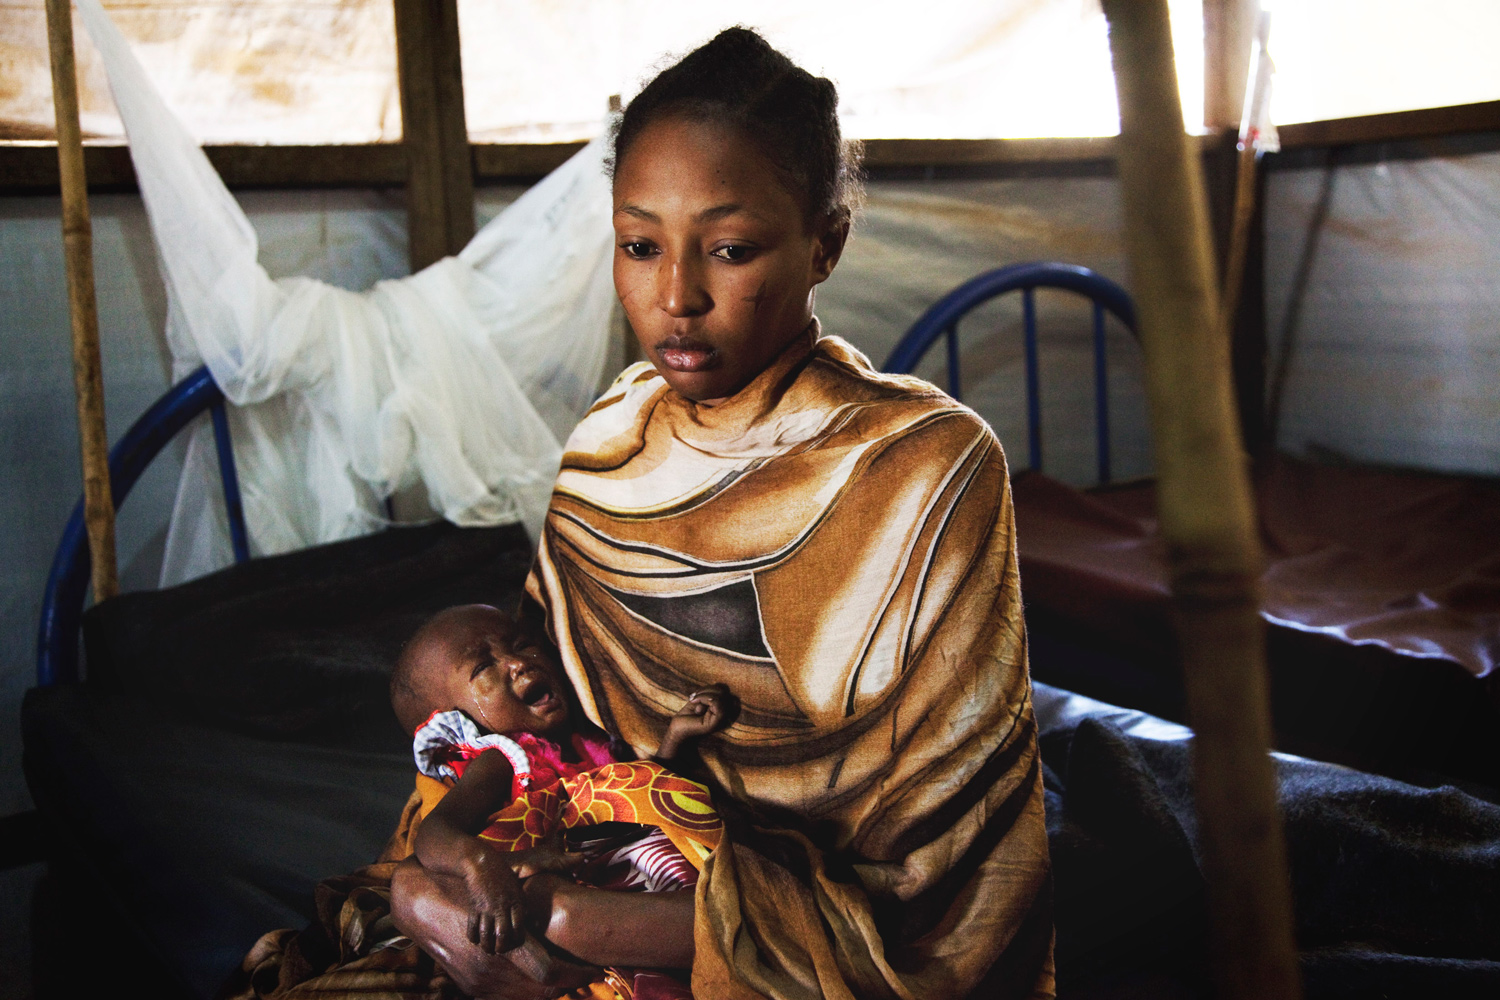 January 11, 2011. Eclas Ahomed, a 20-year-old internal refugee from Northern Sudan cares for her malnourished baby in the intensive care ward at an Aweil hospital.